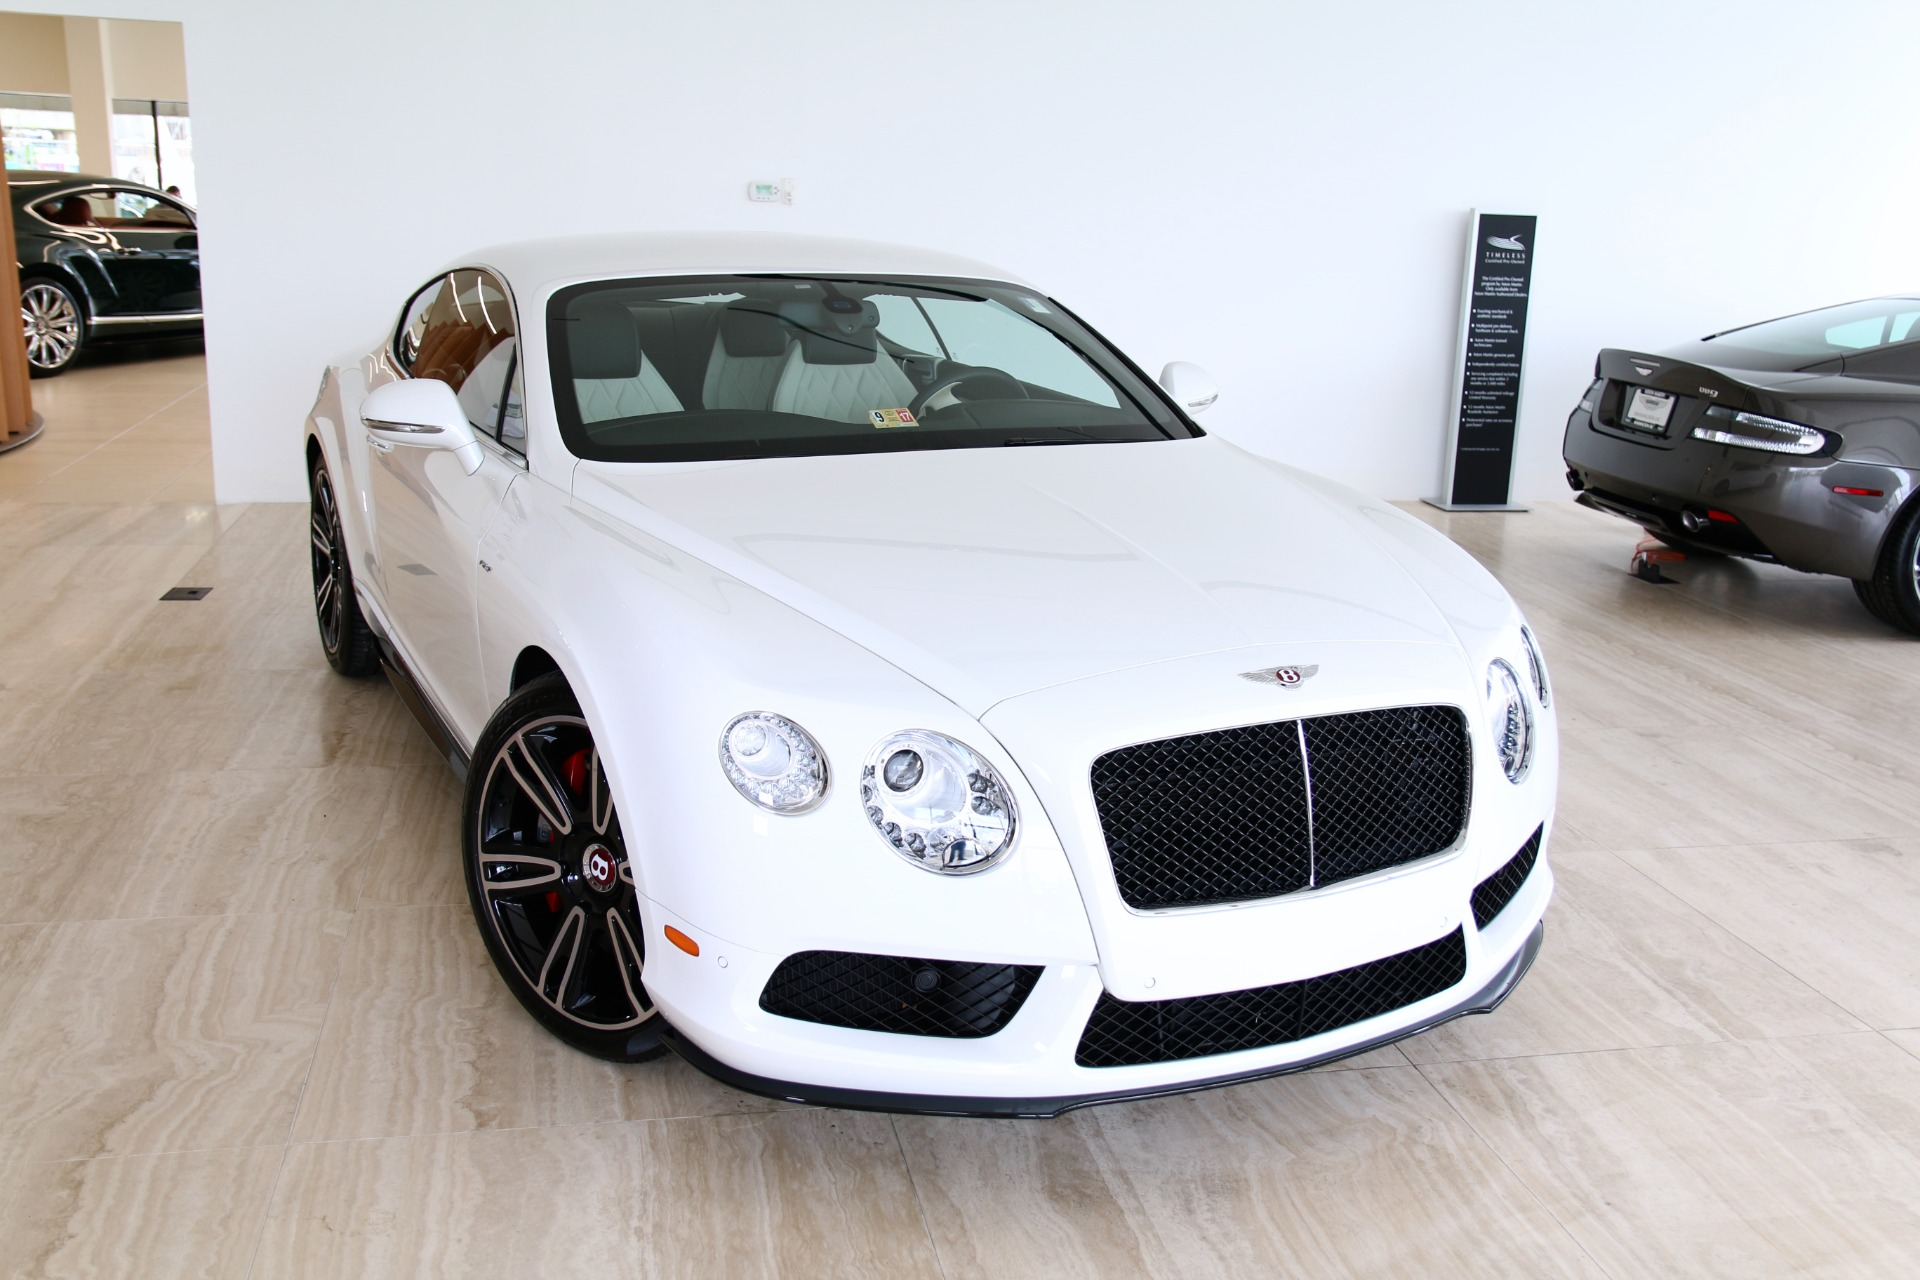 king dsc continental spur bentley lease auto used inventory flying s listings